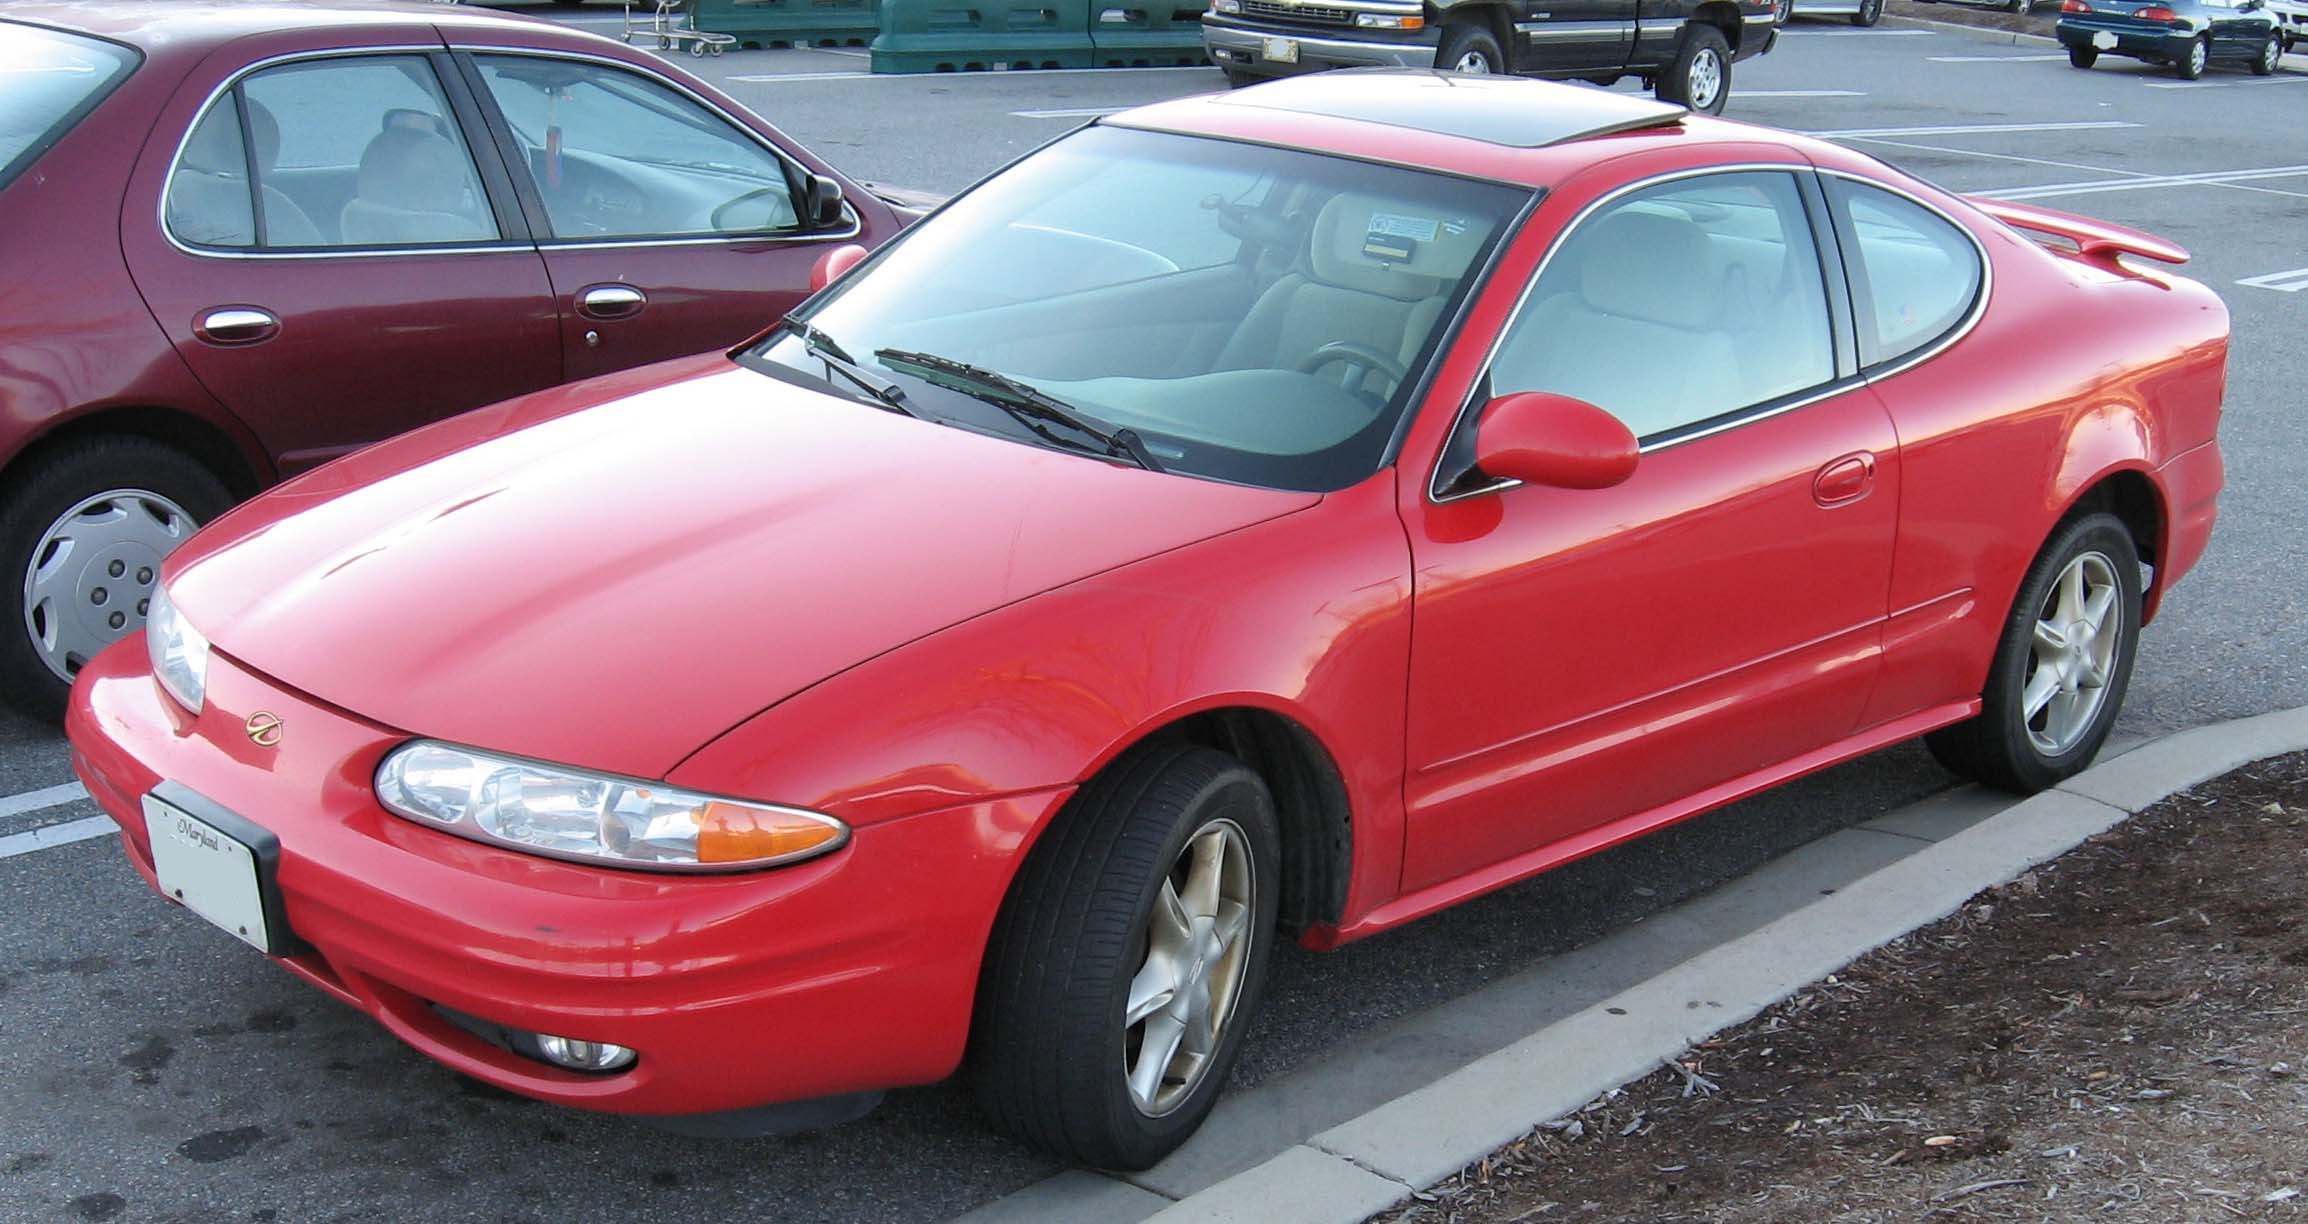 File:Oldsmobile-Alero-Coupe.jpg